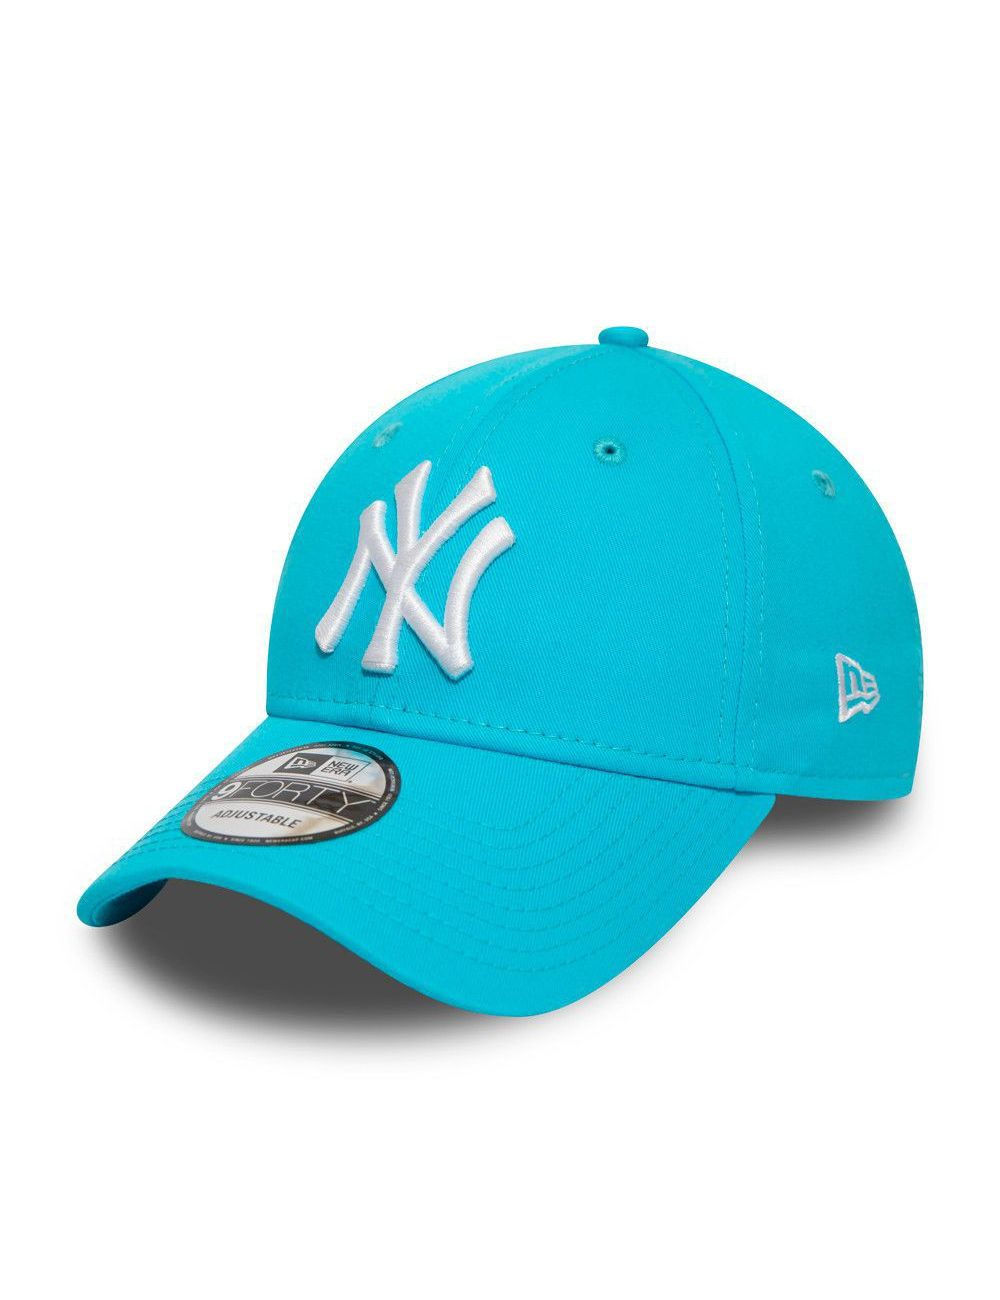 Casquette Femme 9FORTY New York Yankees